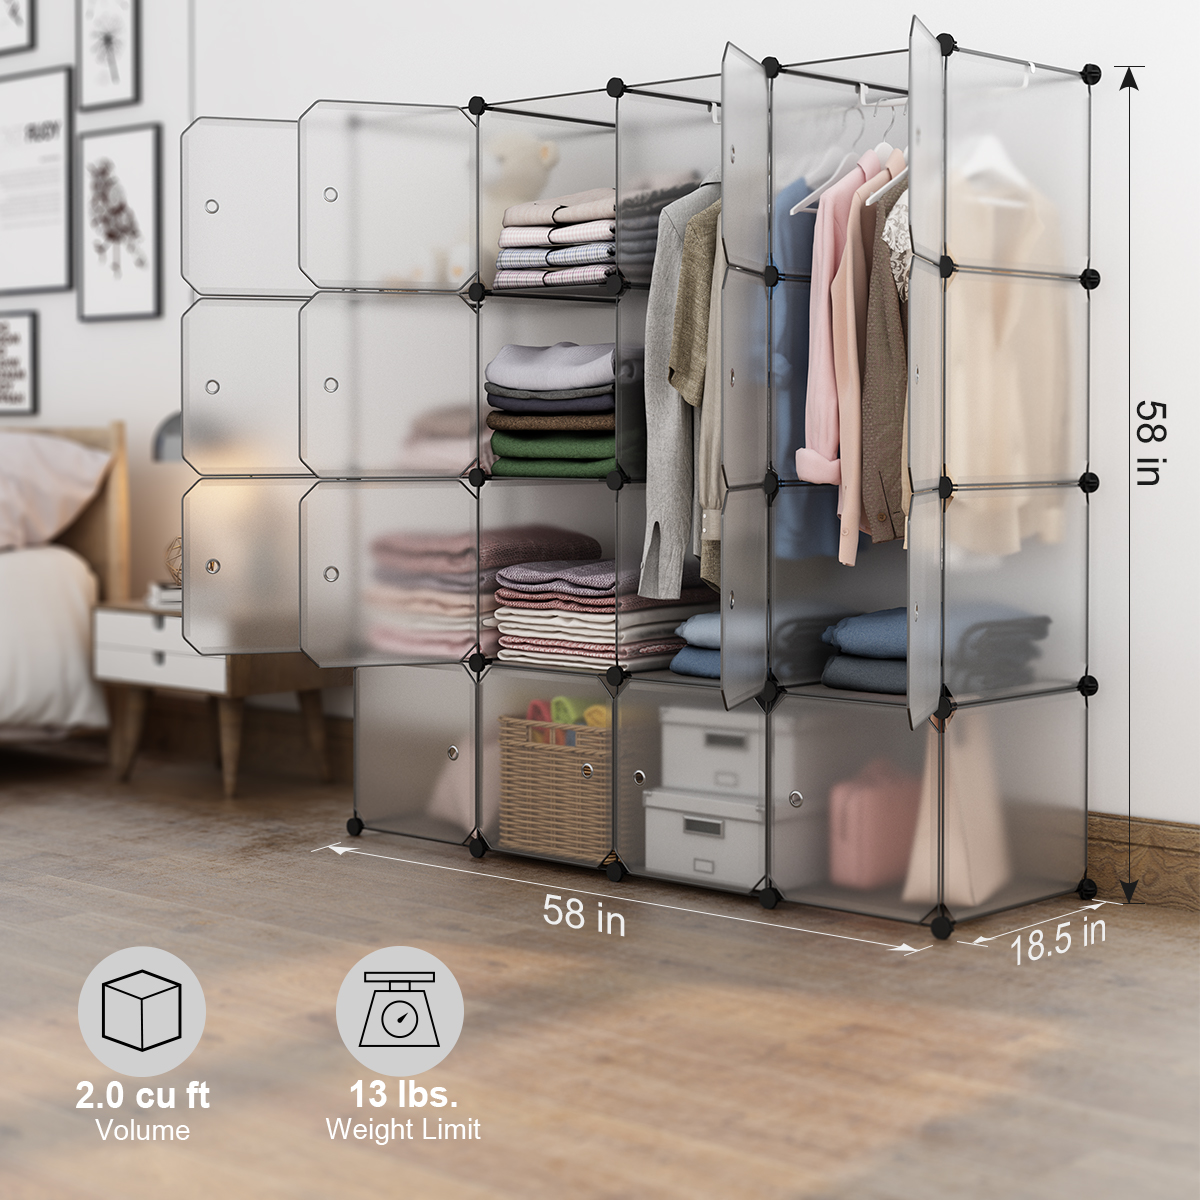 Langria 16 Cube Organizer Stackable Plastic Storage Shelves Design Multifunctional Modular Closet Cabinet With Hanging Rod For Clothes Shoes Toys